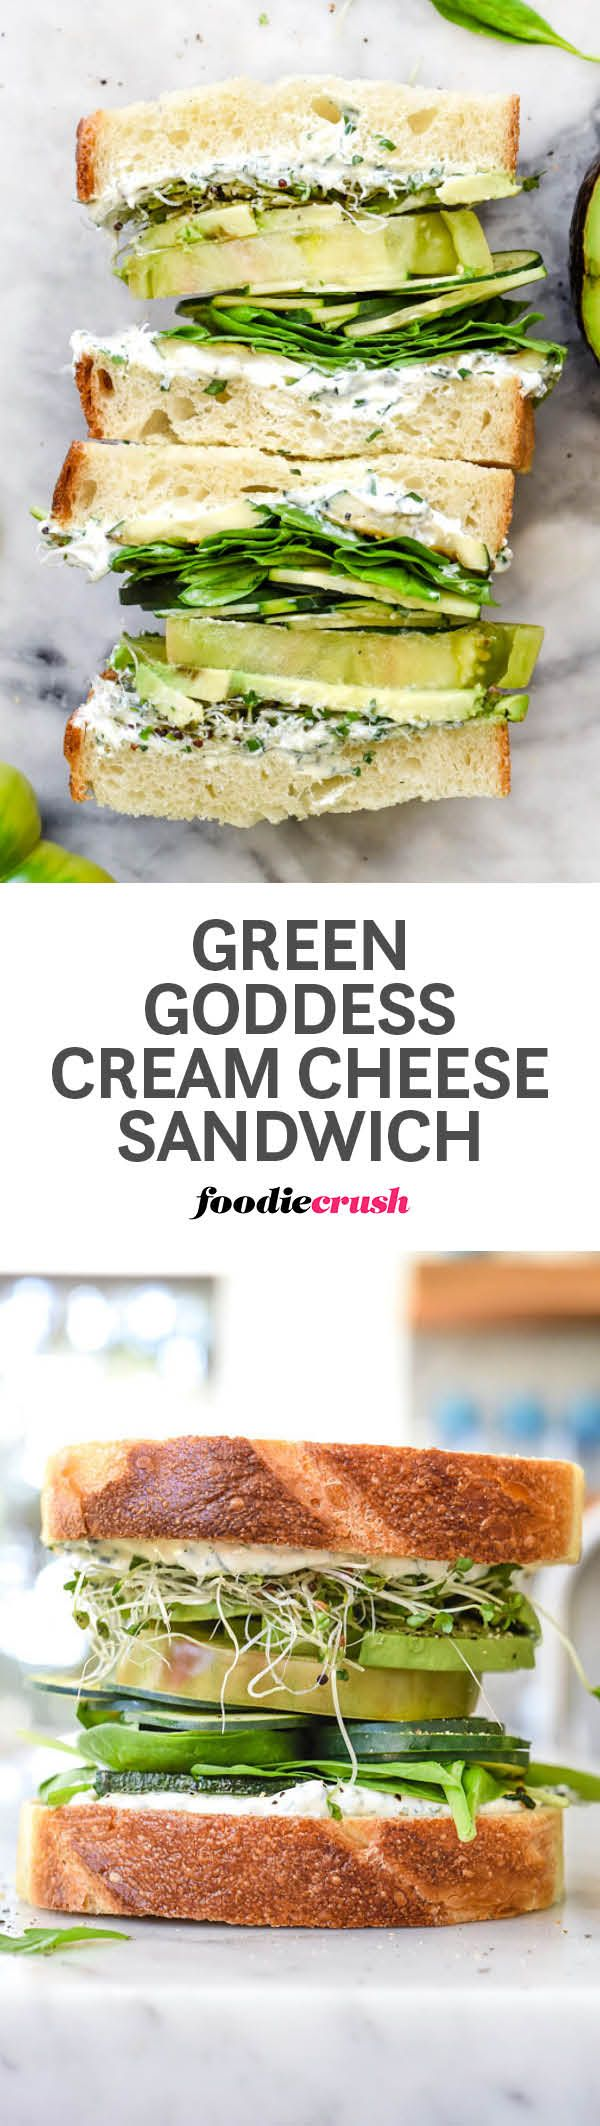 Garlic and herb-infused cream cheese flavor a bounty of green veggies to make a healthy sandwich with loads of flavor. | foodiecrush.com #sandwich #veggie #greengoddess #creamcheese